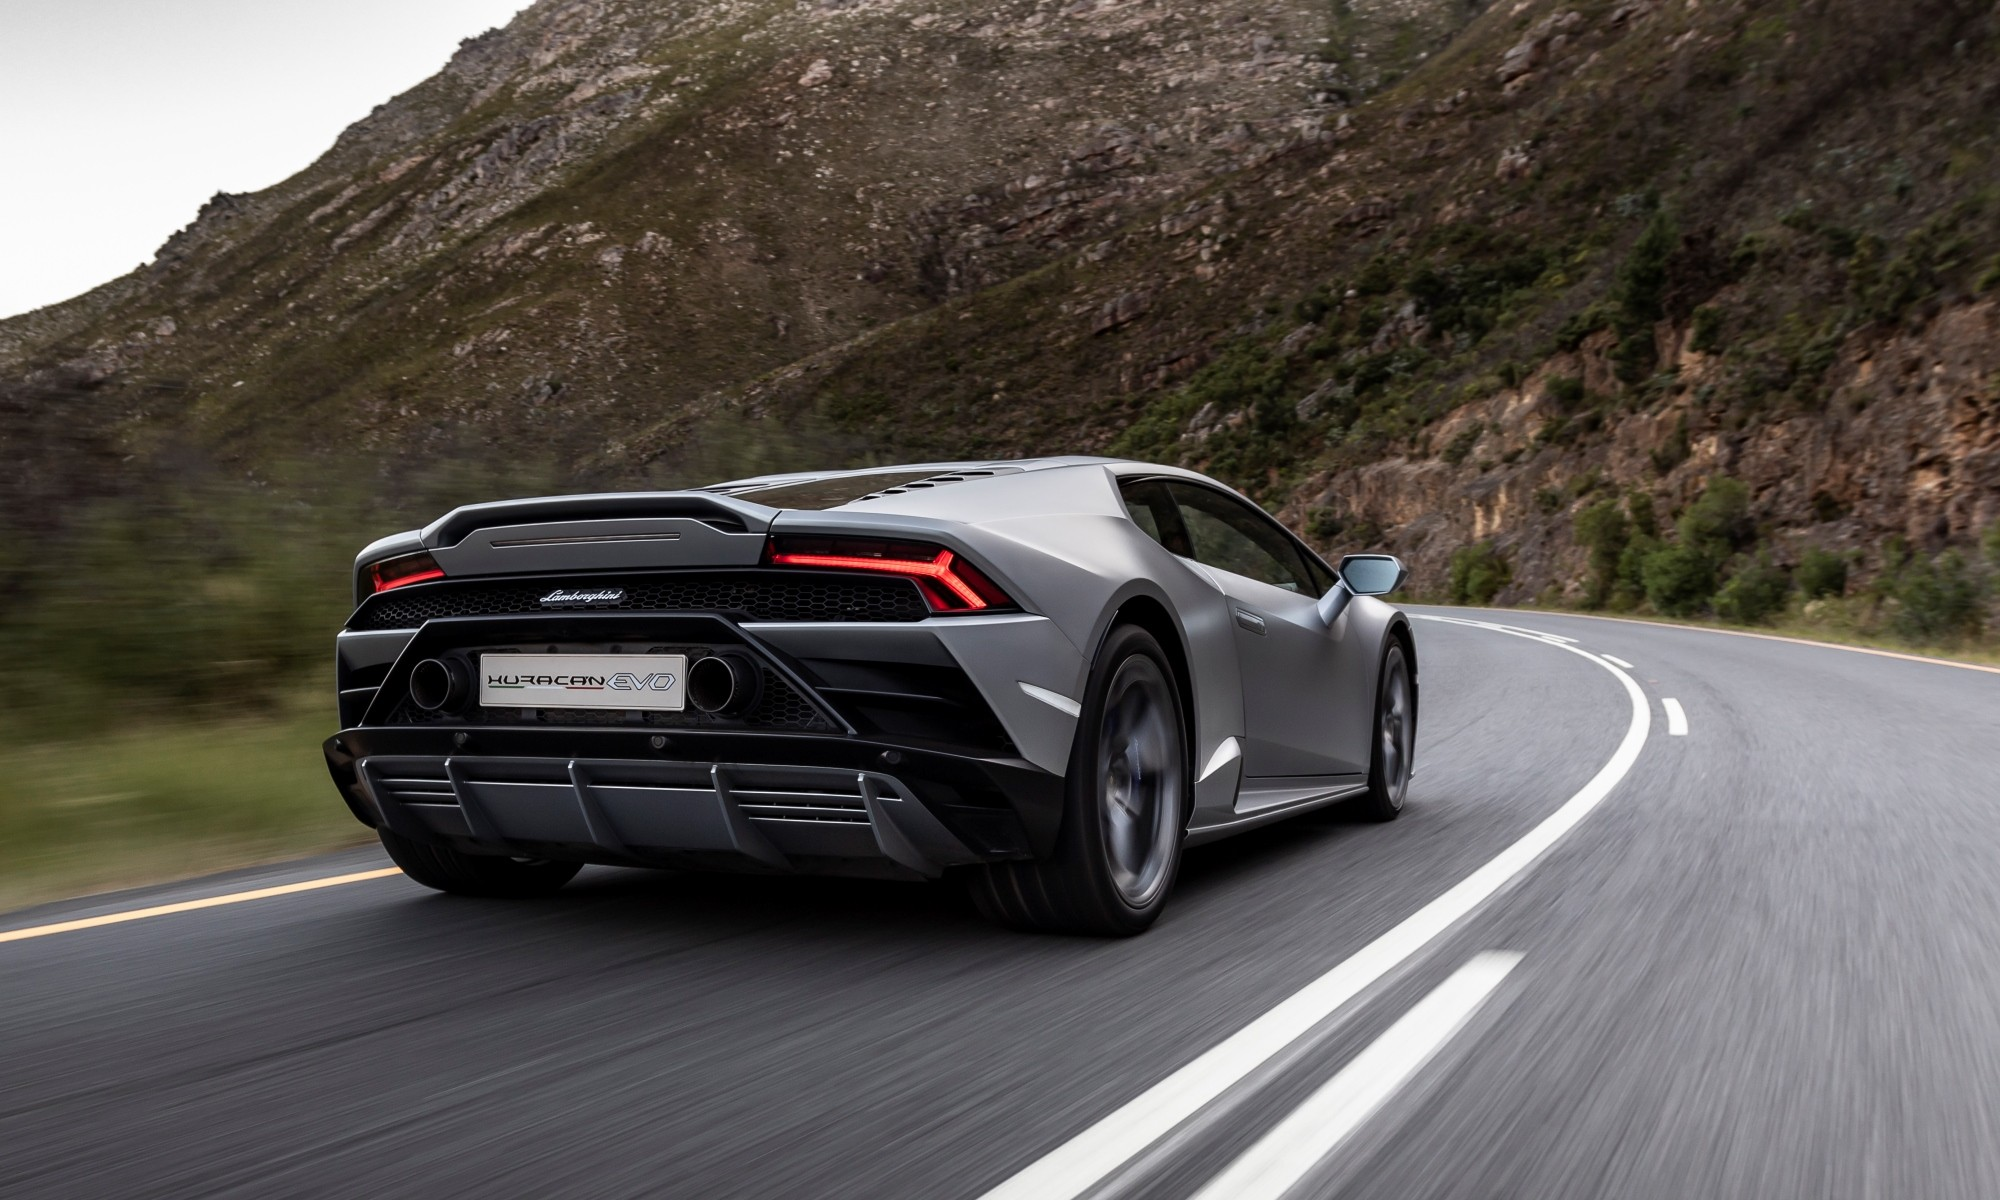 Lamborghini Huracan Evo driven rear